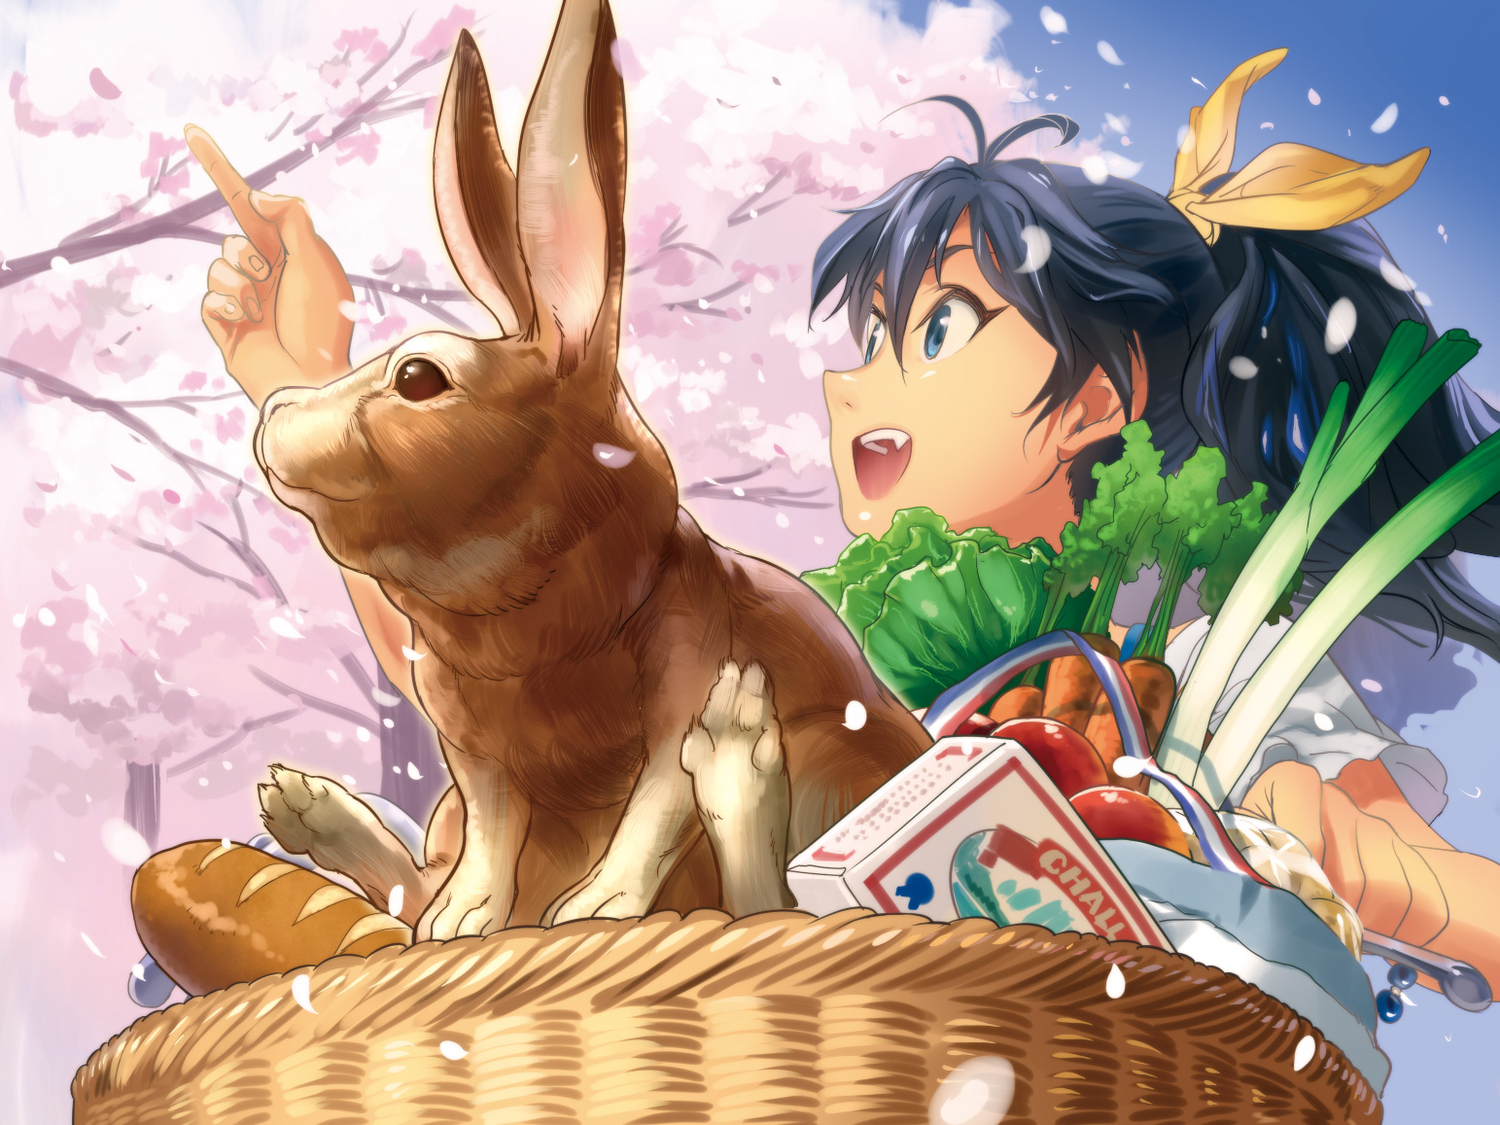 andou_chikanori animal black_hair blue_eyes bunny cherry_blossoms food ganaha_hibiki idolmaster long_hair petals rabbit